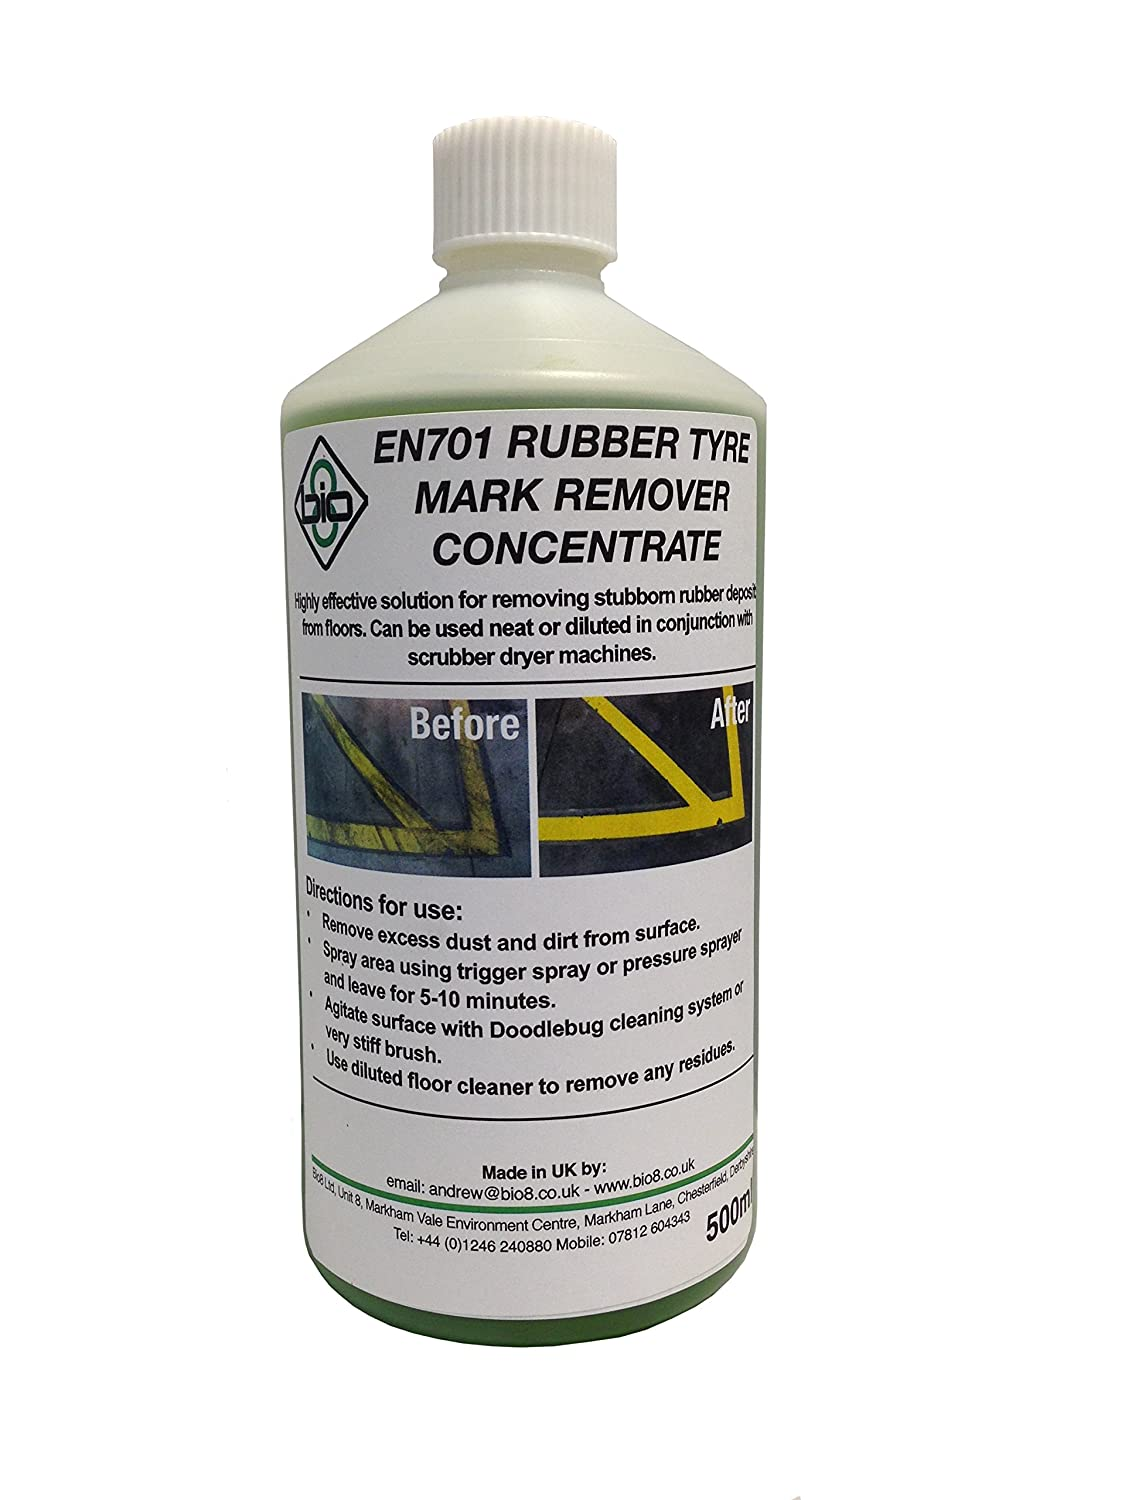 Envii Rubber Tyre Mark Remover Concentrate – Non-Corrosive Floor Cleaner Removes Fork-Lift and Other Tyre Marks – 500ml Bio8